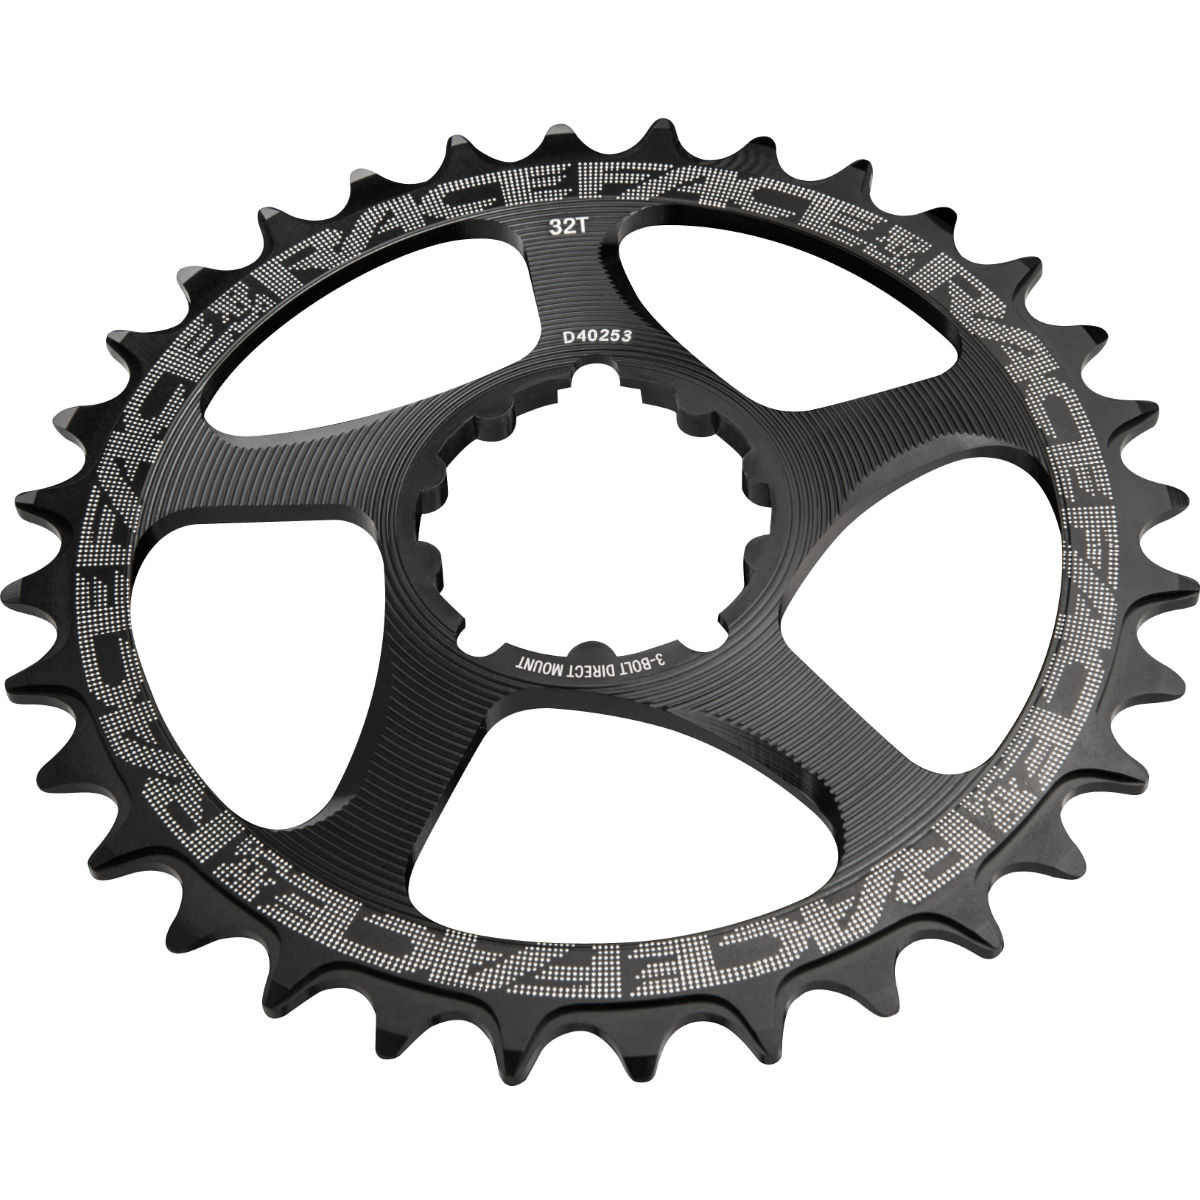 Race Face Direct Mount Sram Narrow/wide Single Chainring - 30t Black